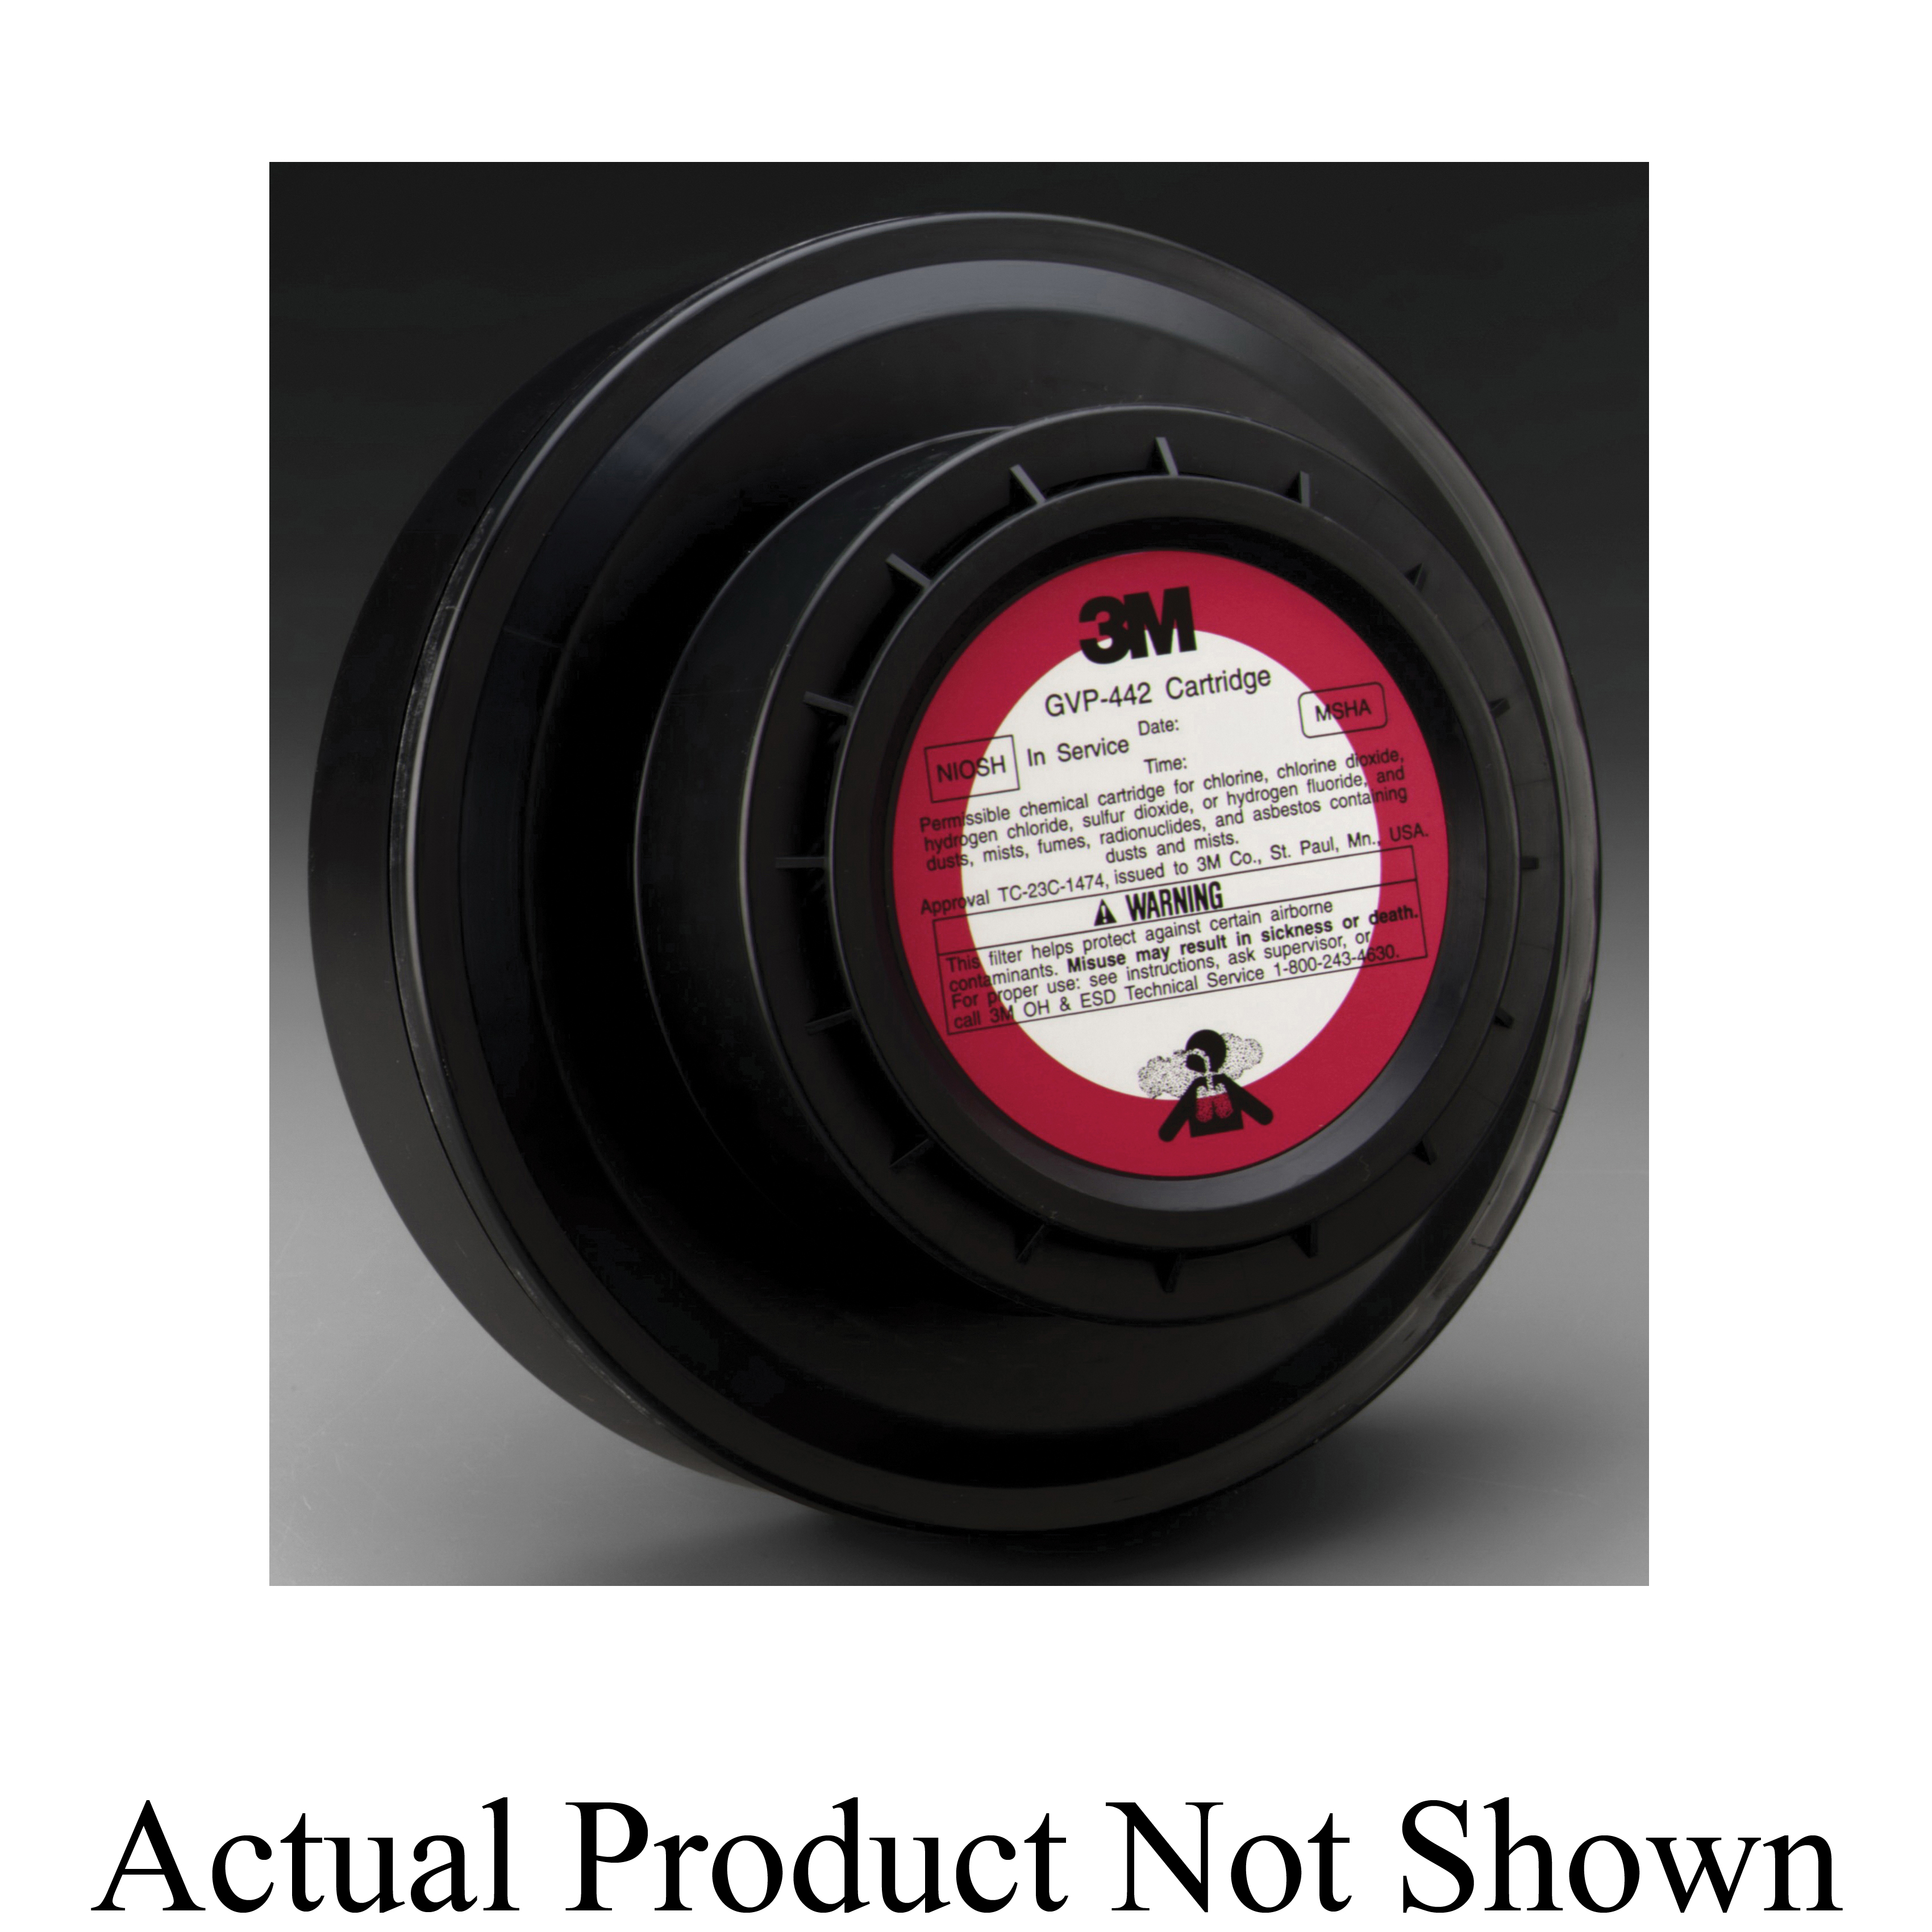 3M™ 051138-29219 Filter, For Use With Belt Mounted PAPR Systems, Gray, Resists: Particulates -- DUE TO HIGH DEMAND, we may be unable to fulfill any orders for this product regardless of stock status indicated.